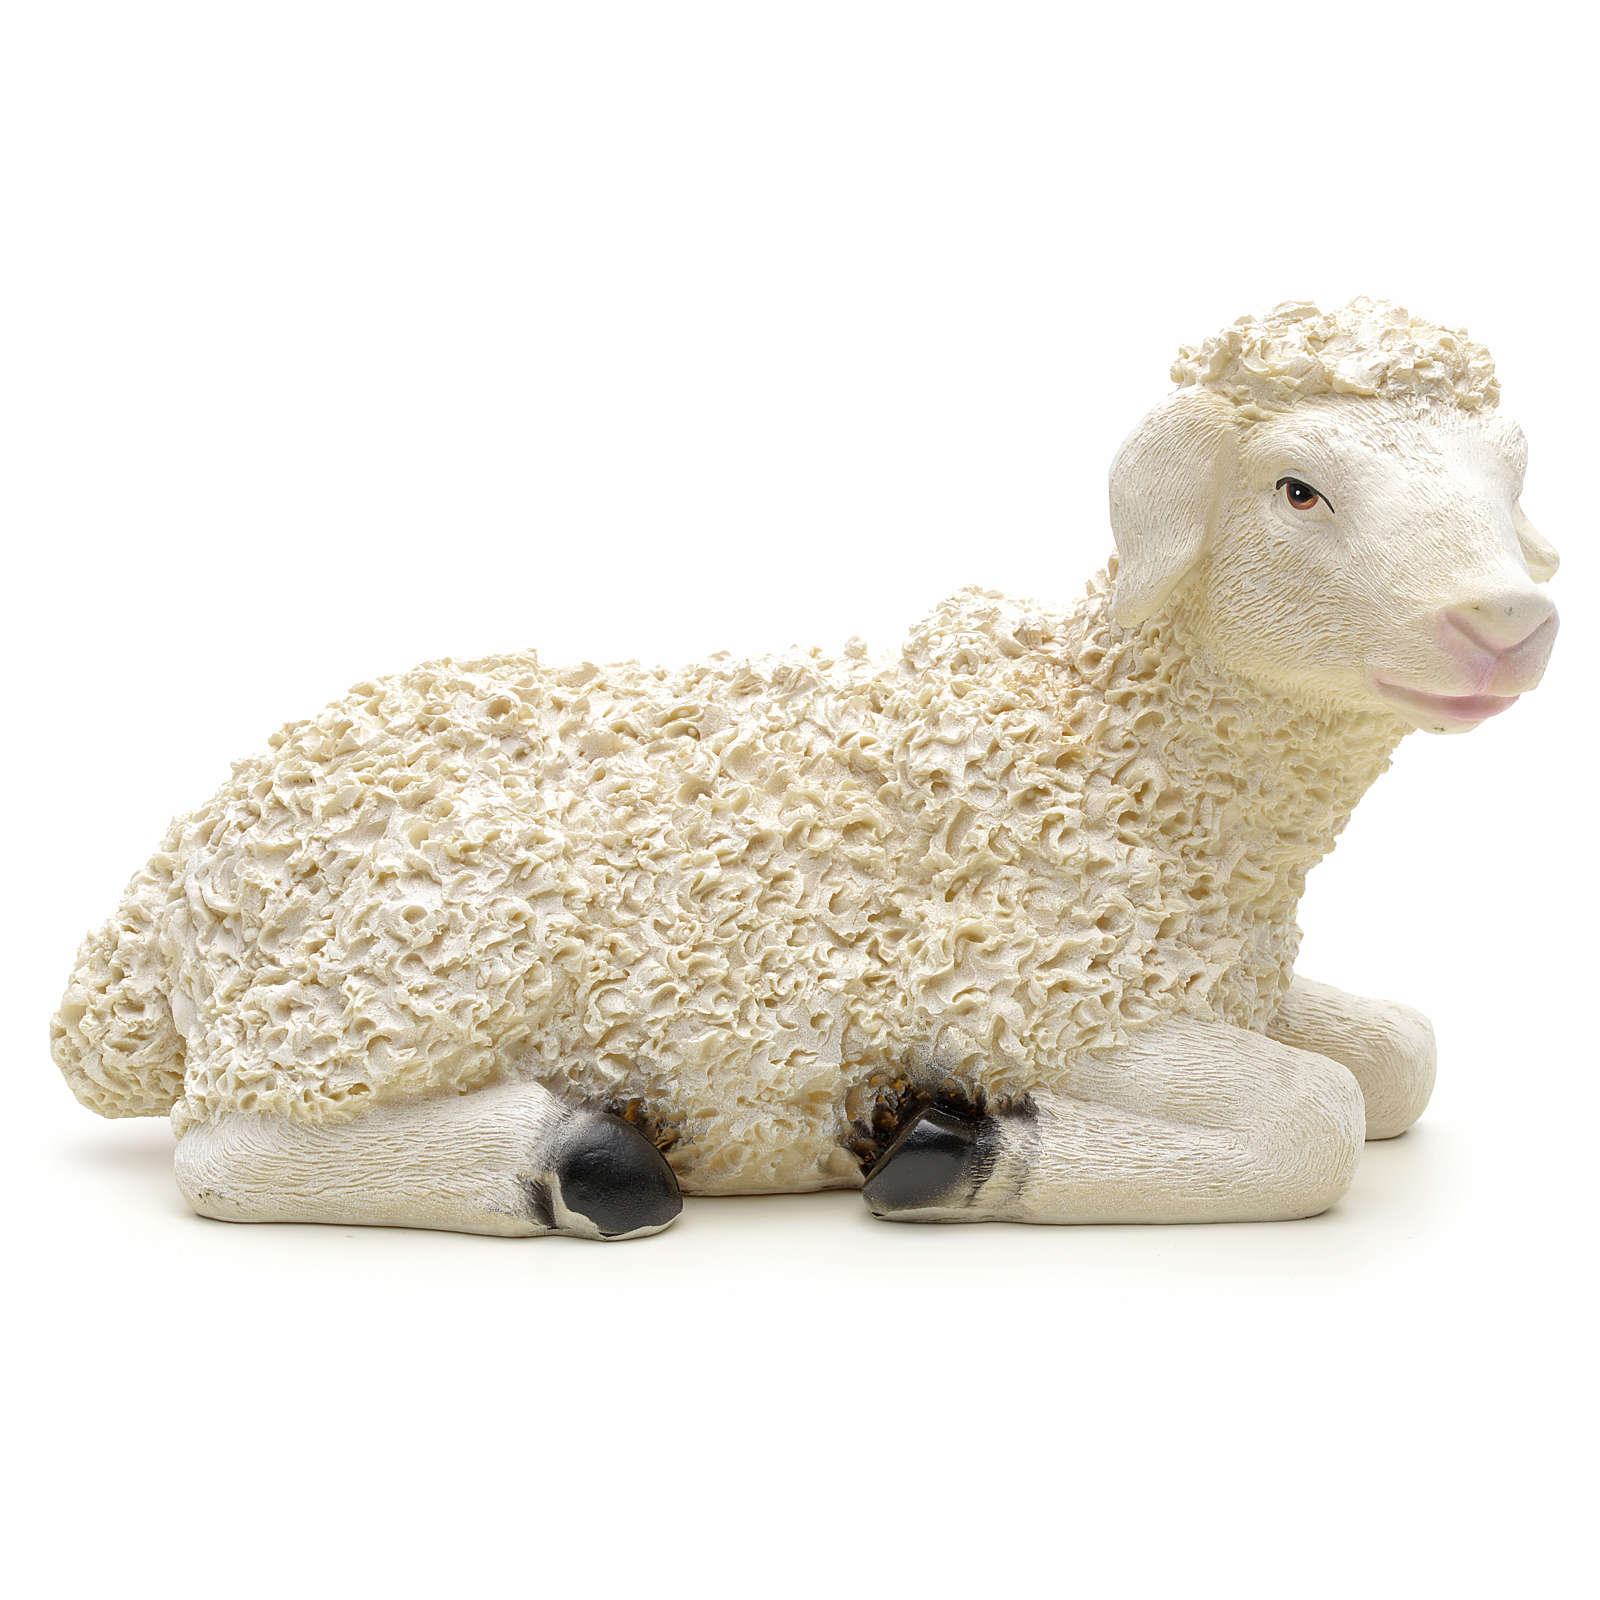 Nativity figurine, sheep in resin measuring 29x12x17cm 3